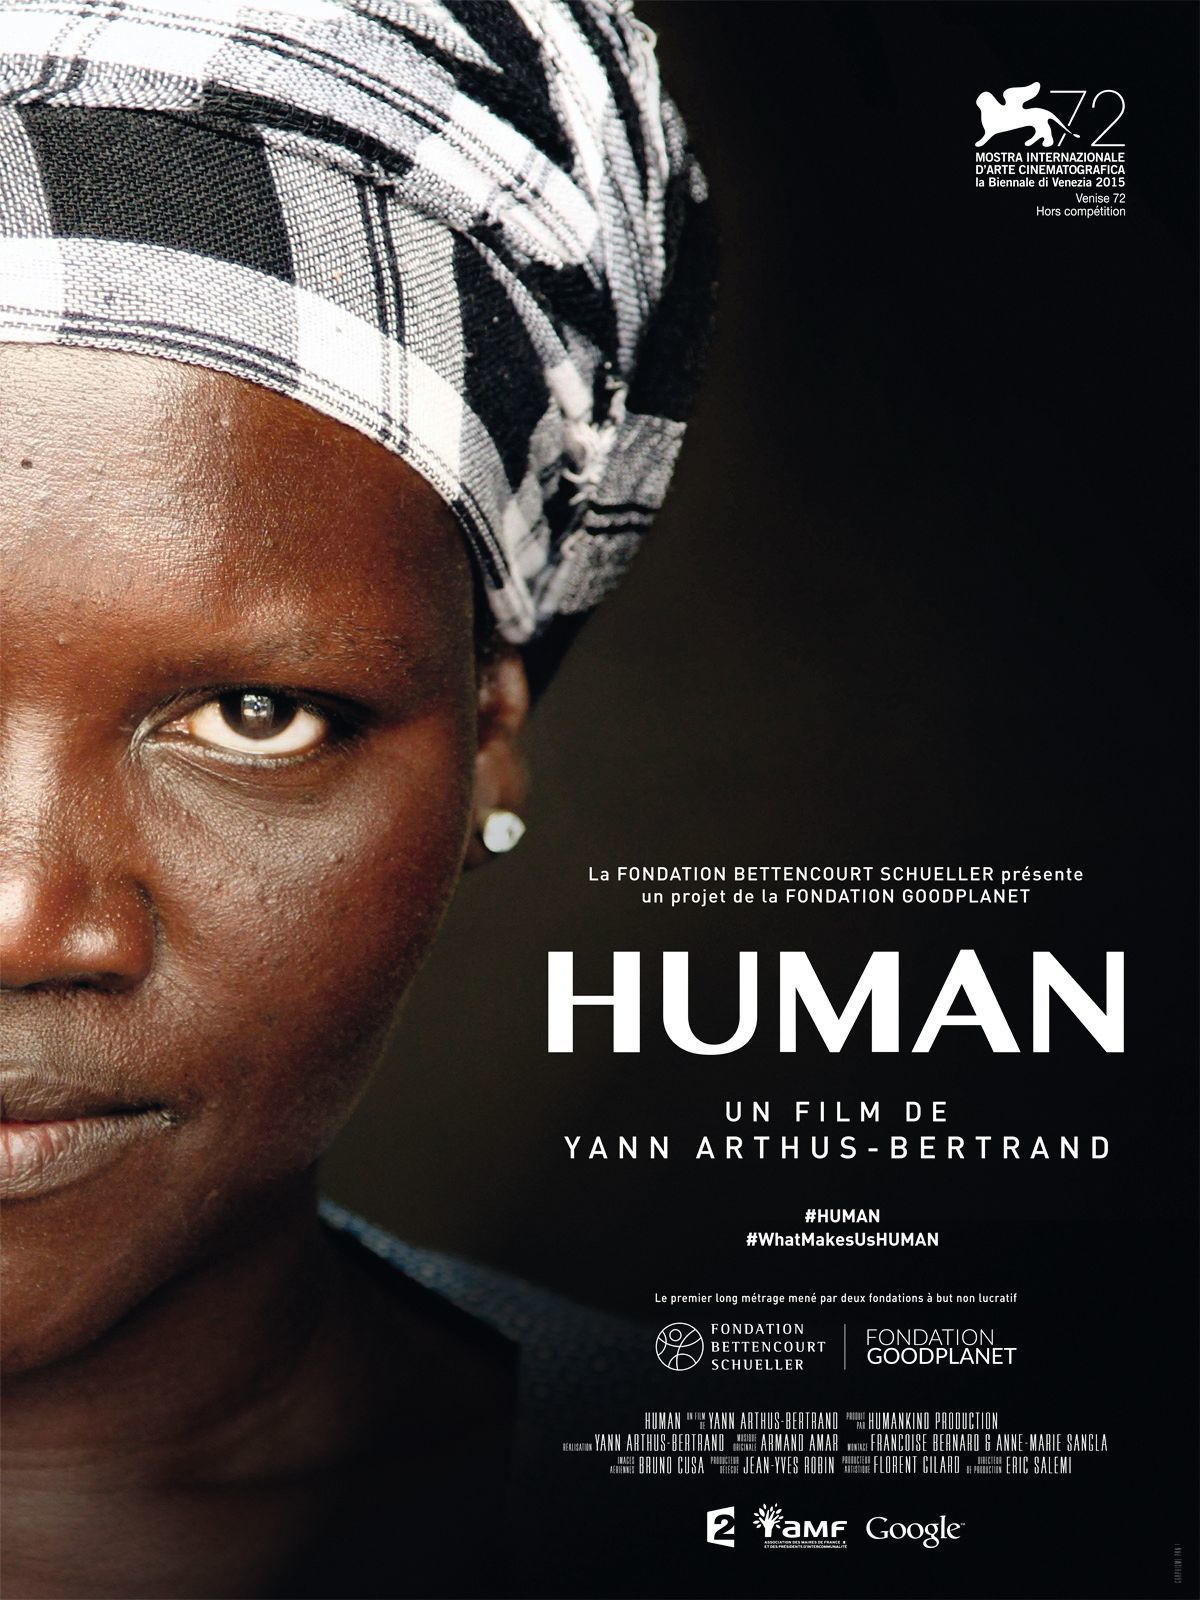 Yann Arthus-Bertrand, Human, film documentaire, 2015